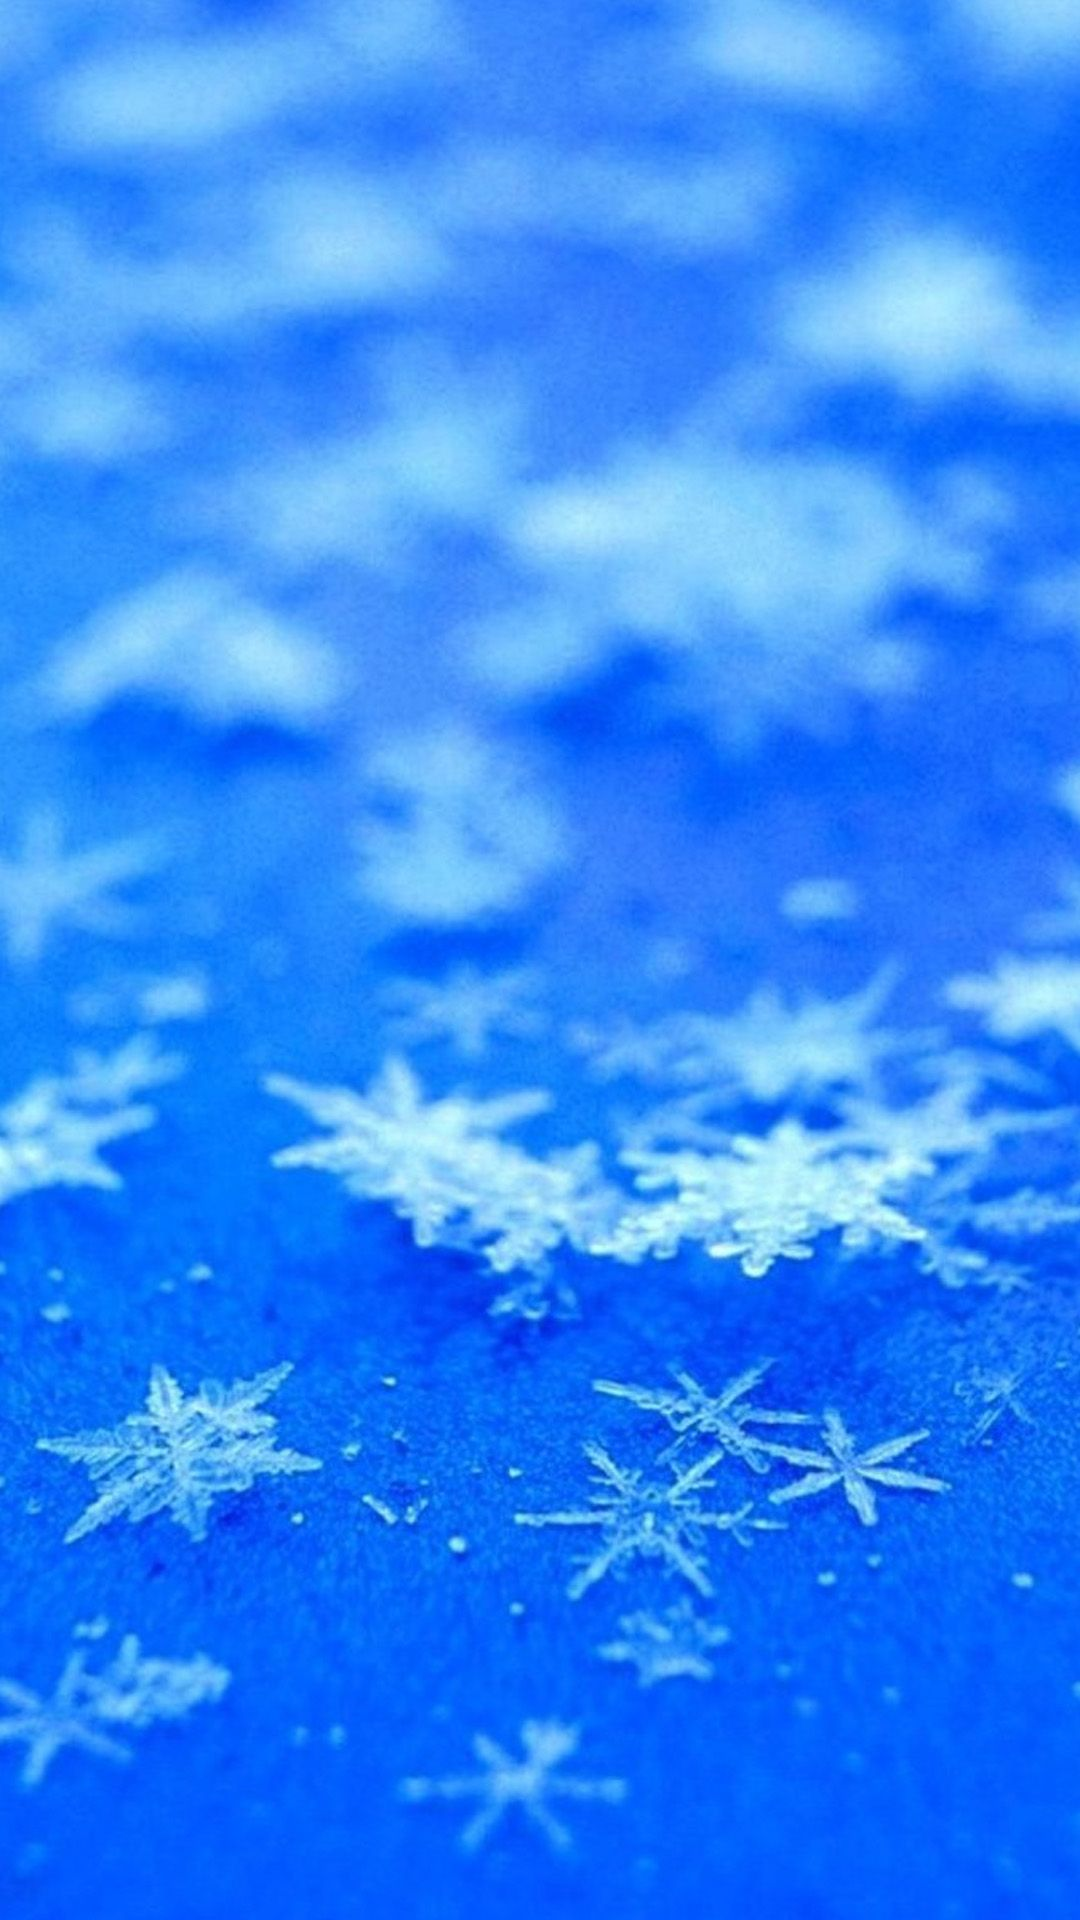 Abstract Icy Snowflake Background iPhone 6 wallpaper